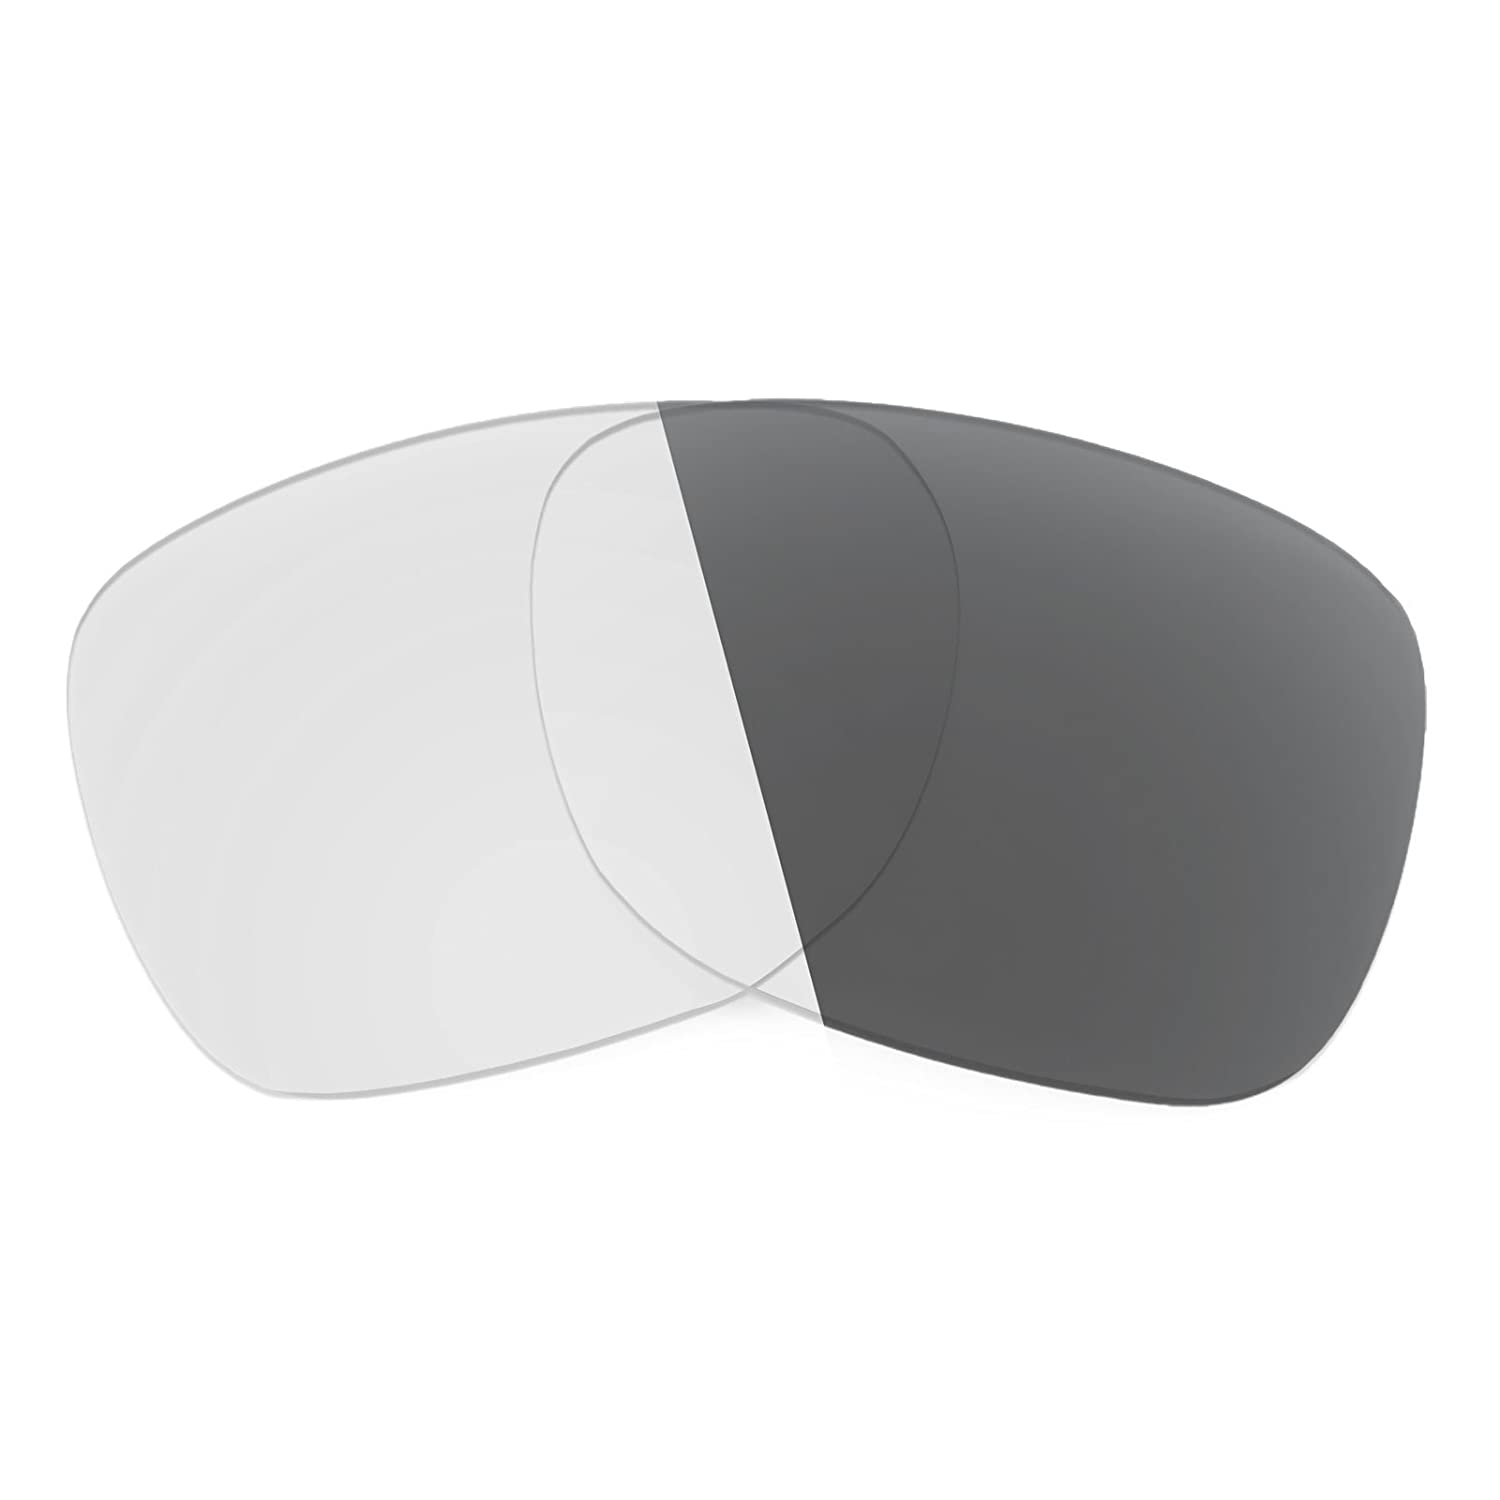 3ecb47ec0f Revant Replacement Lenses for Ray-Ban Justin 54mm RB4165 Elite Adapt Grey  Photochromic  Amazon.co.uk  Clothing